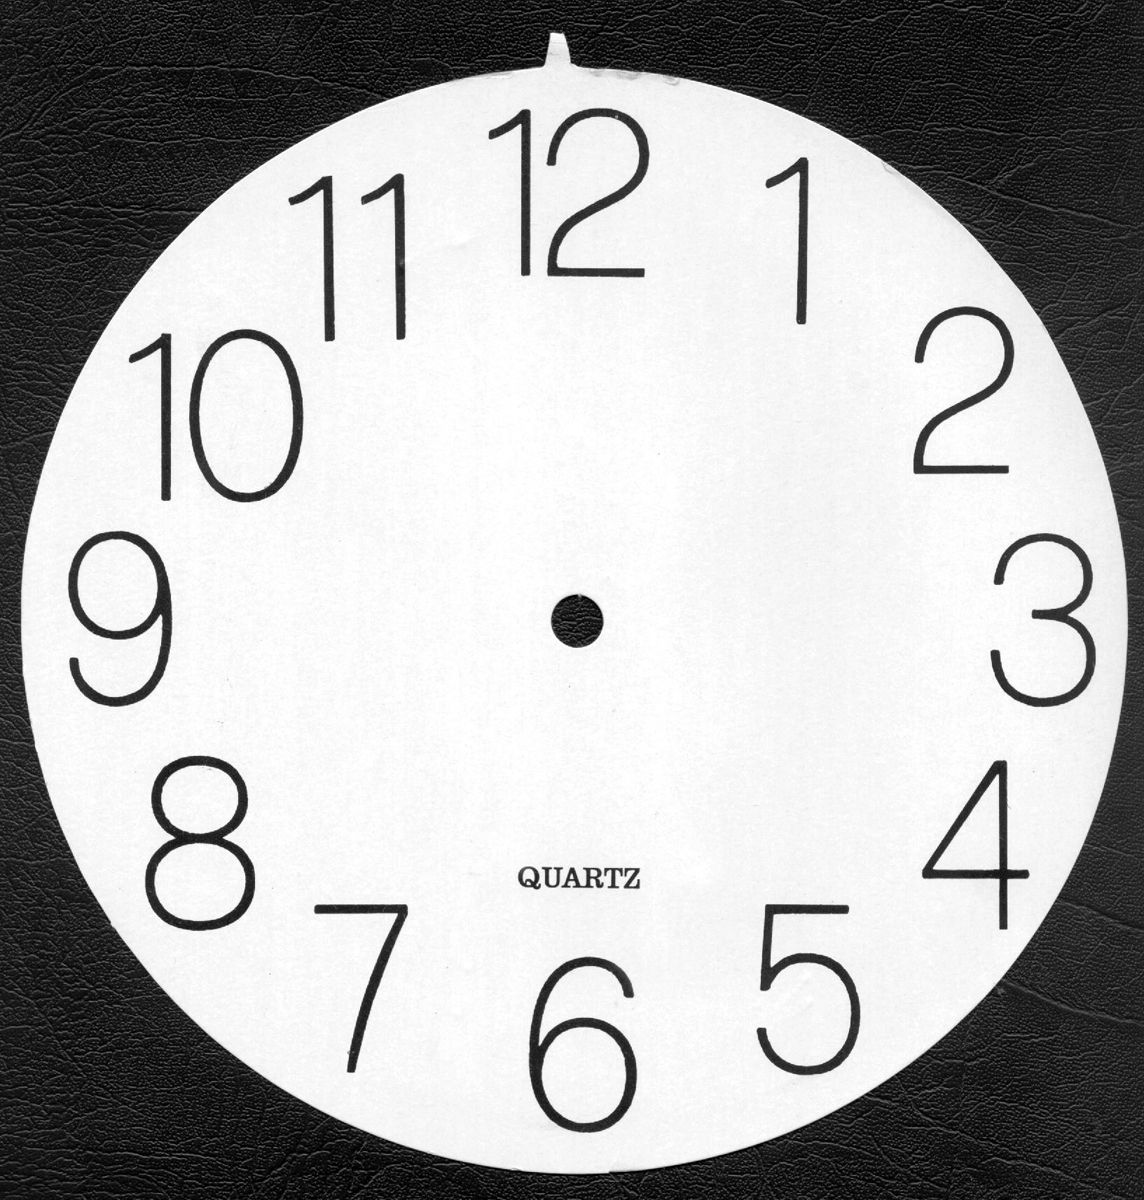 graphic regarding Free Printable Clock Template titled Cost-free Printable Clock Faces Clock Confront as a result of ~onehourphoto upon